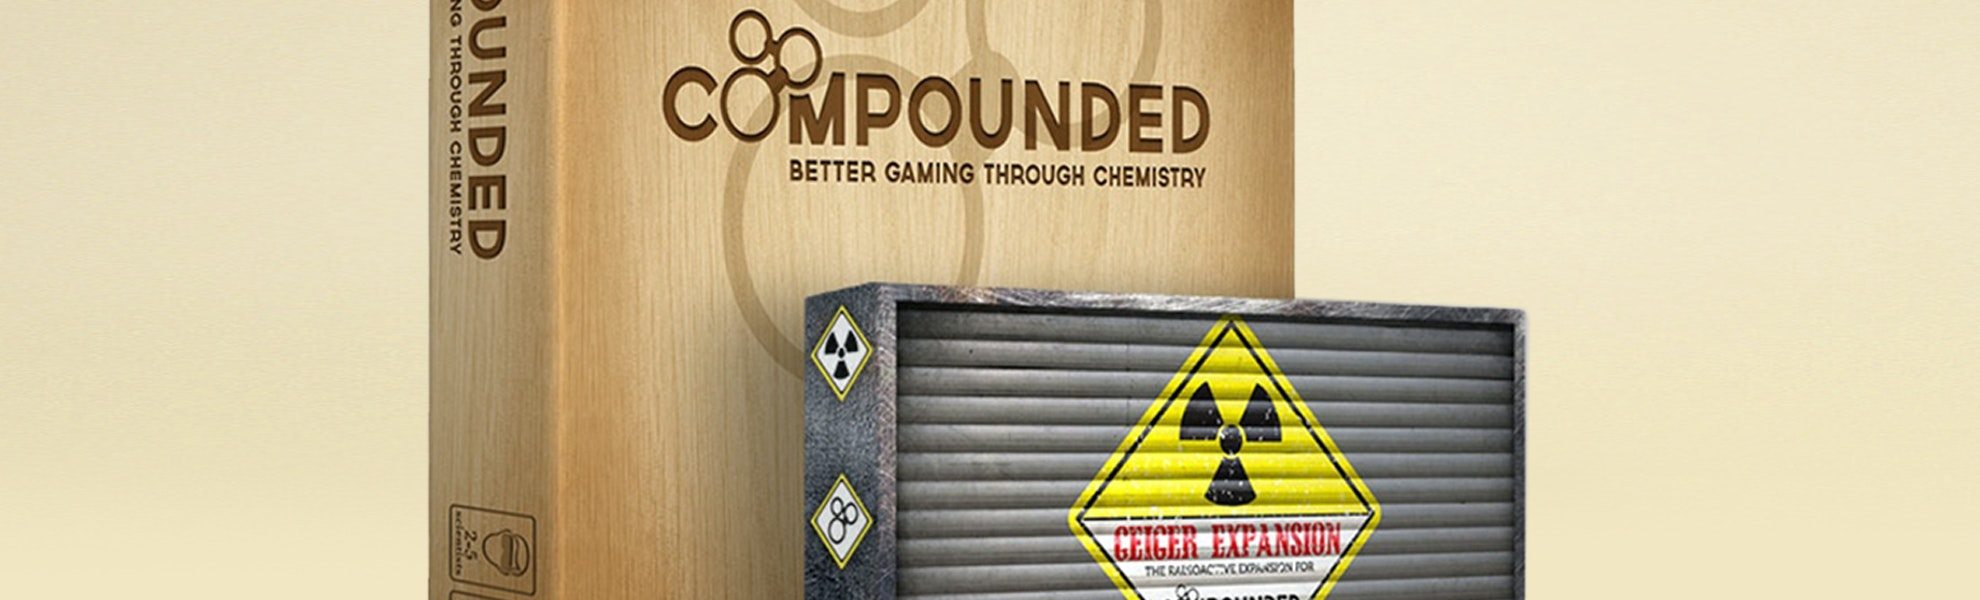 Compounded Board Game Bundle